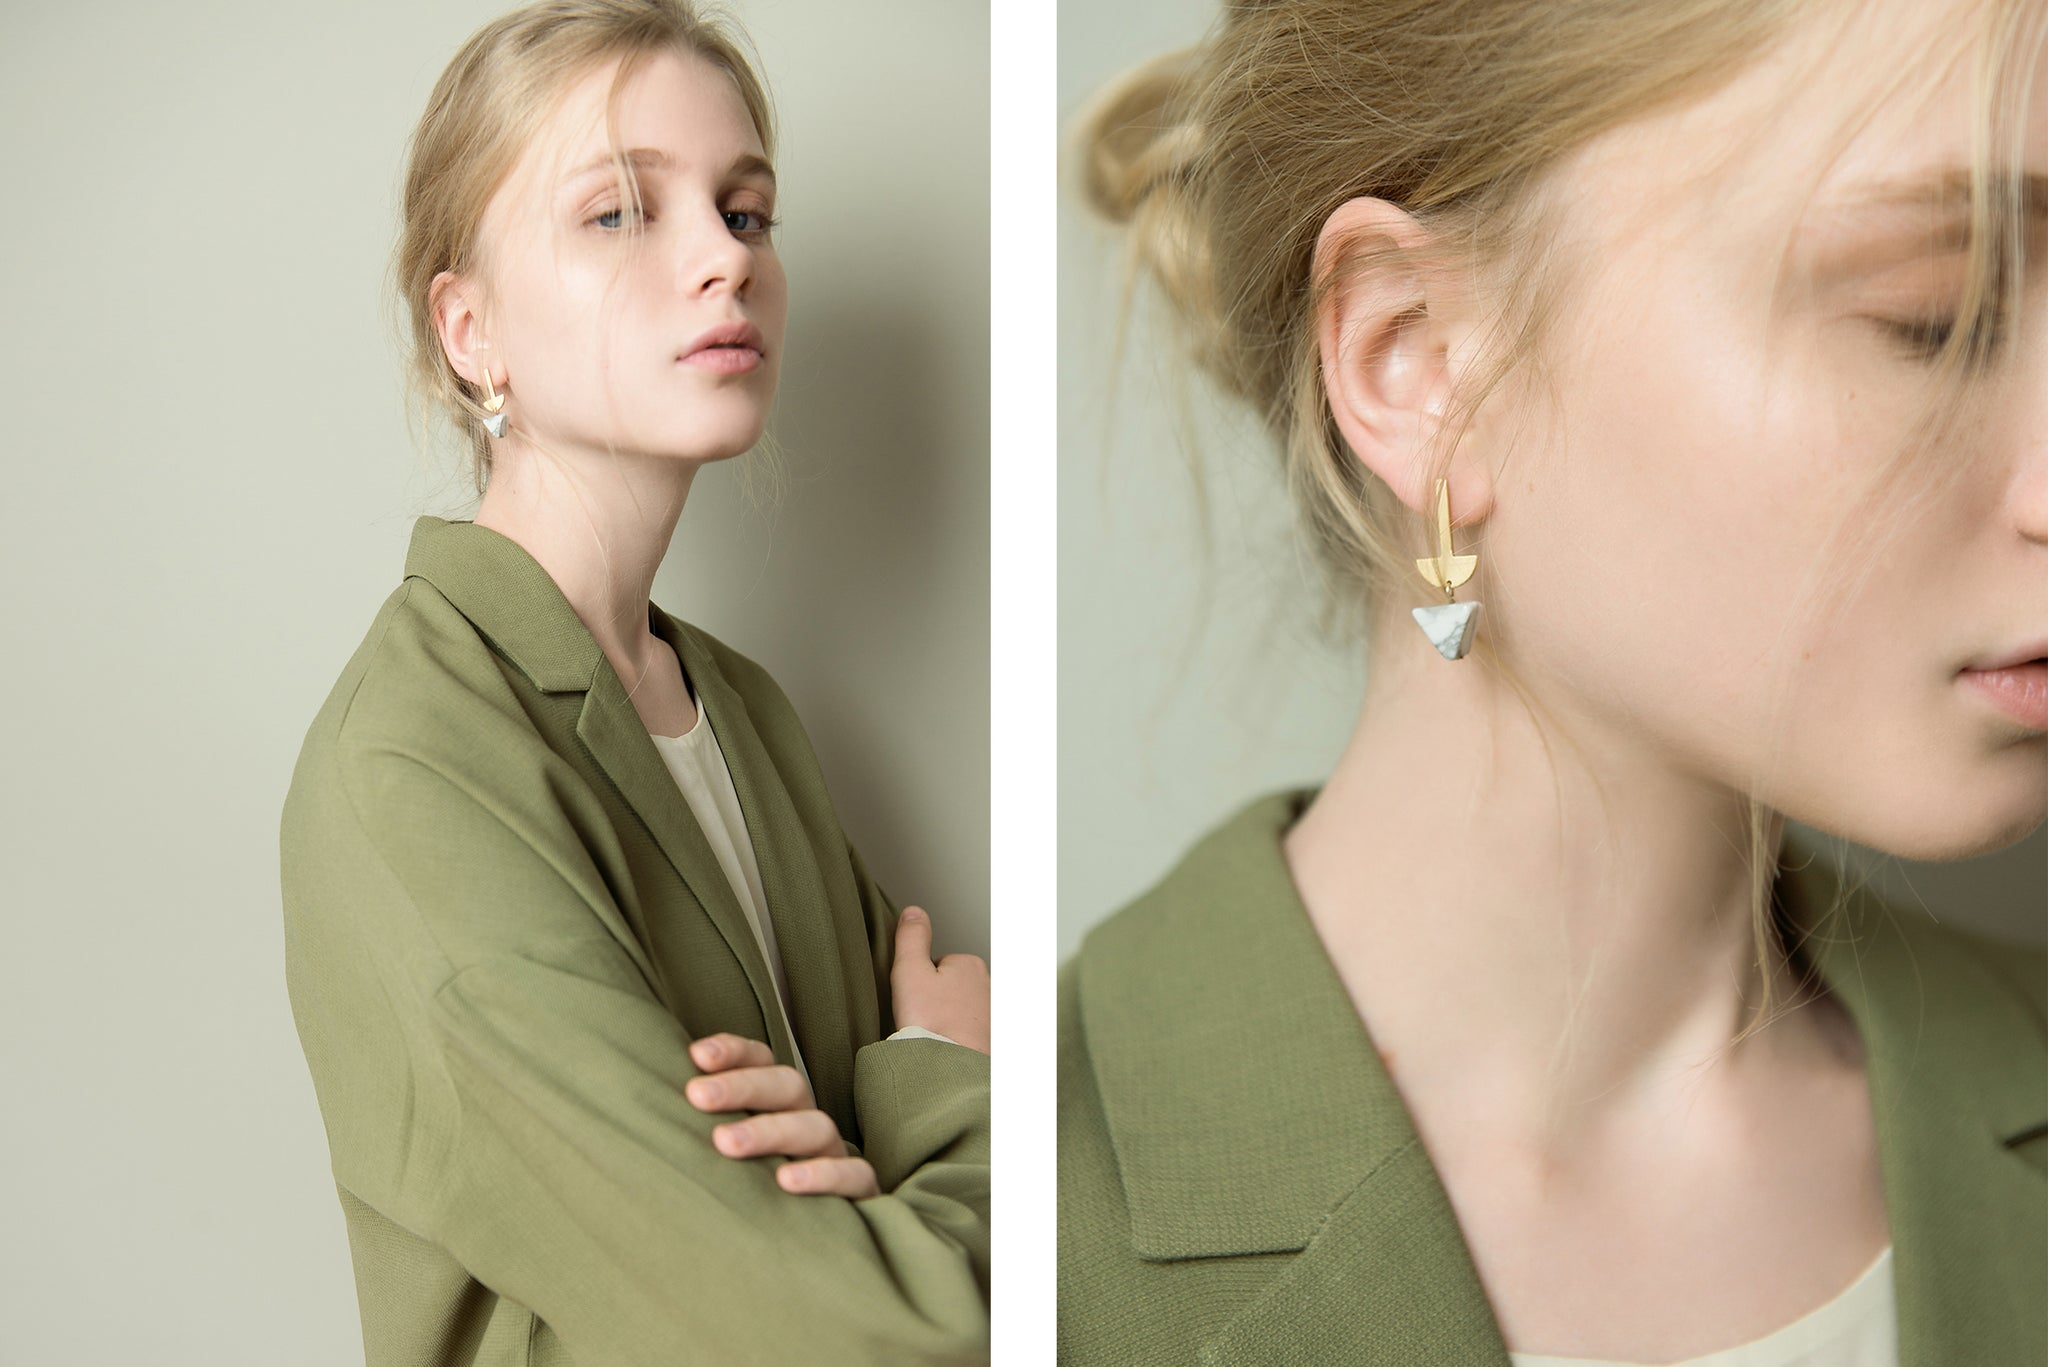 Baiushki Lookbook Jewelry Pendel Earrings